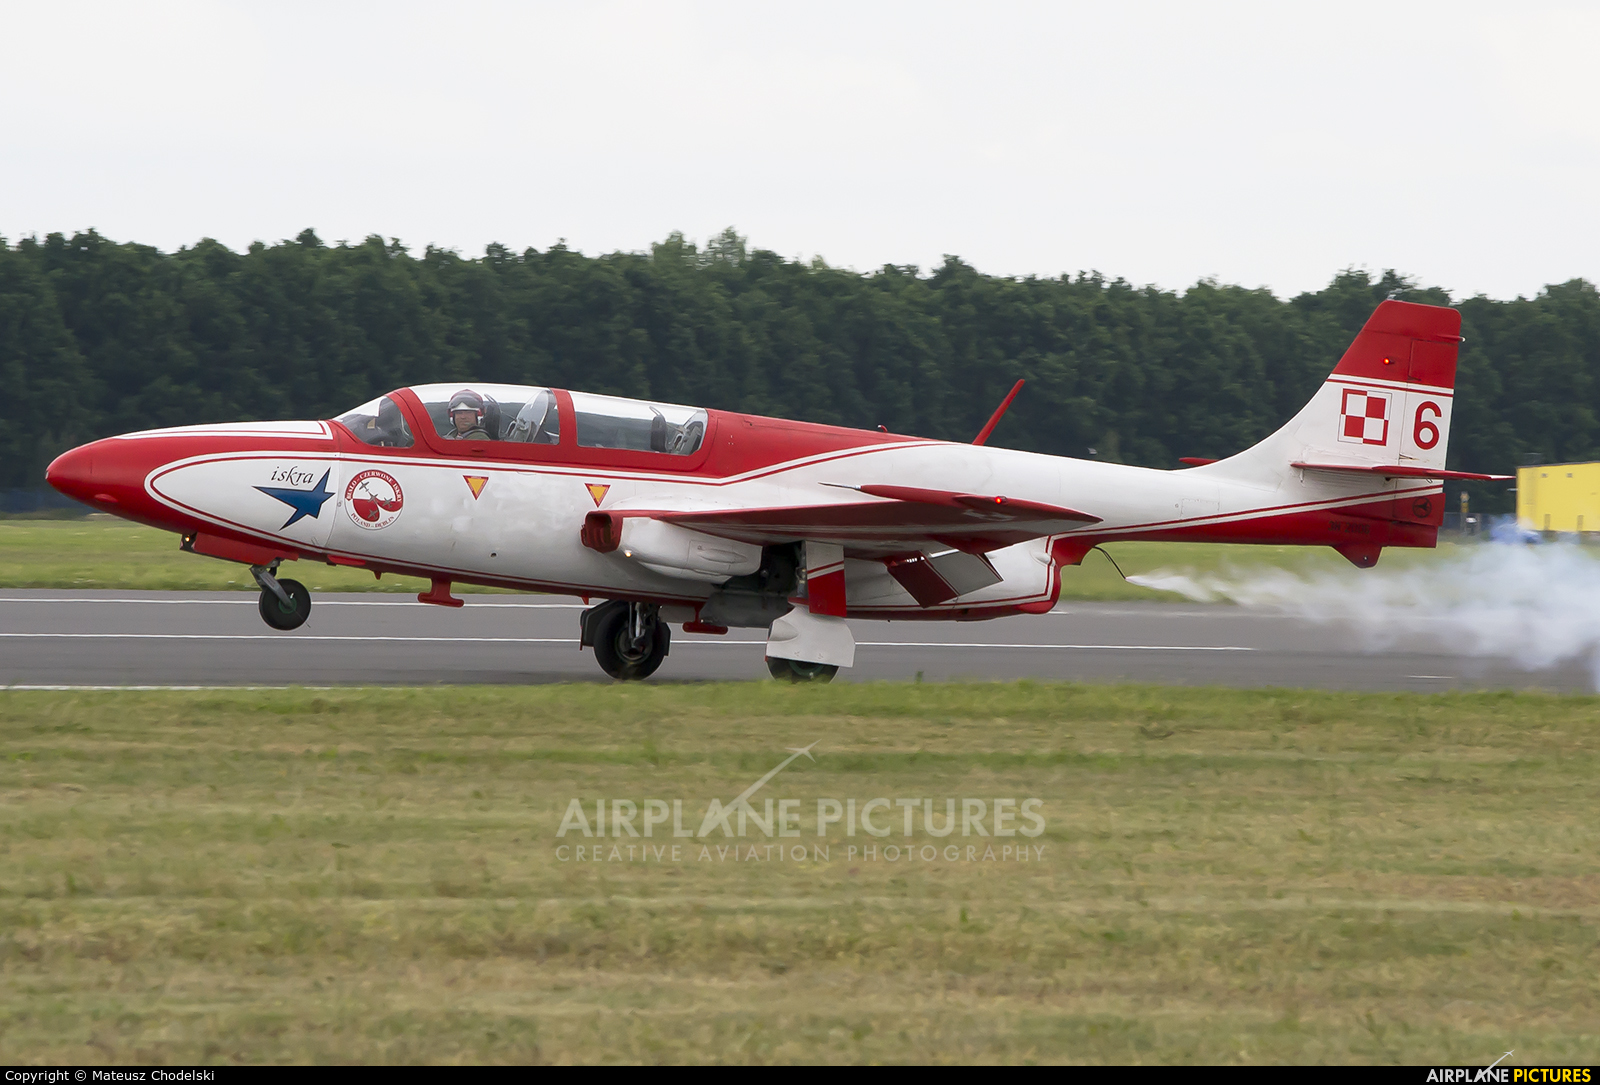 Poland - Air Force: White & Red Iskras 2006 aircraft at Dęblin